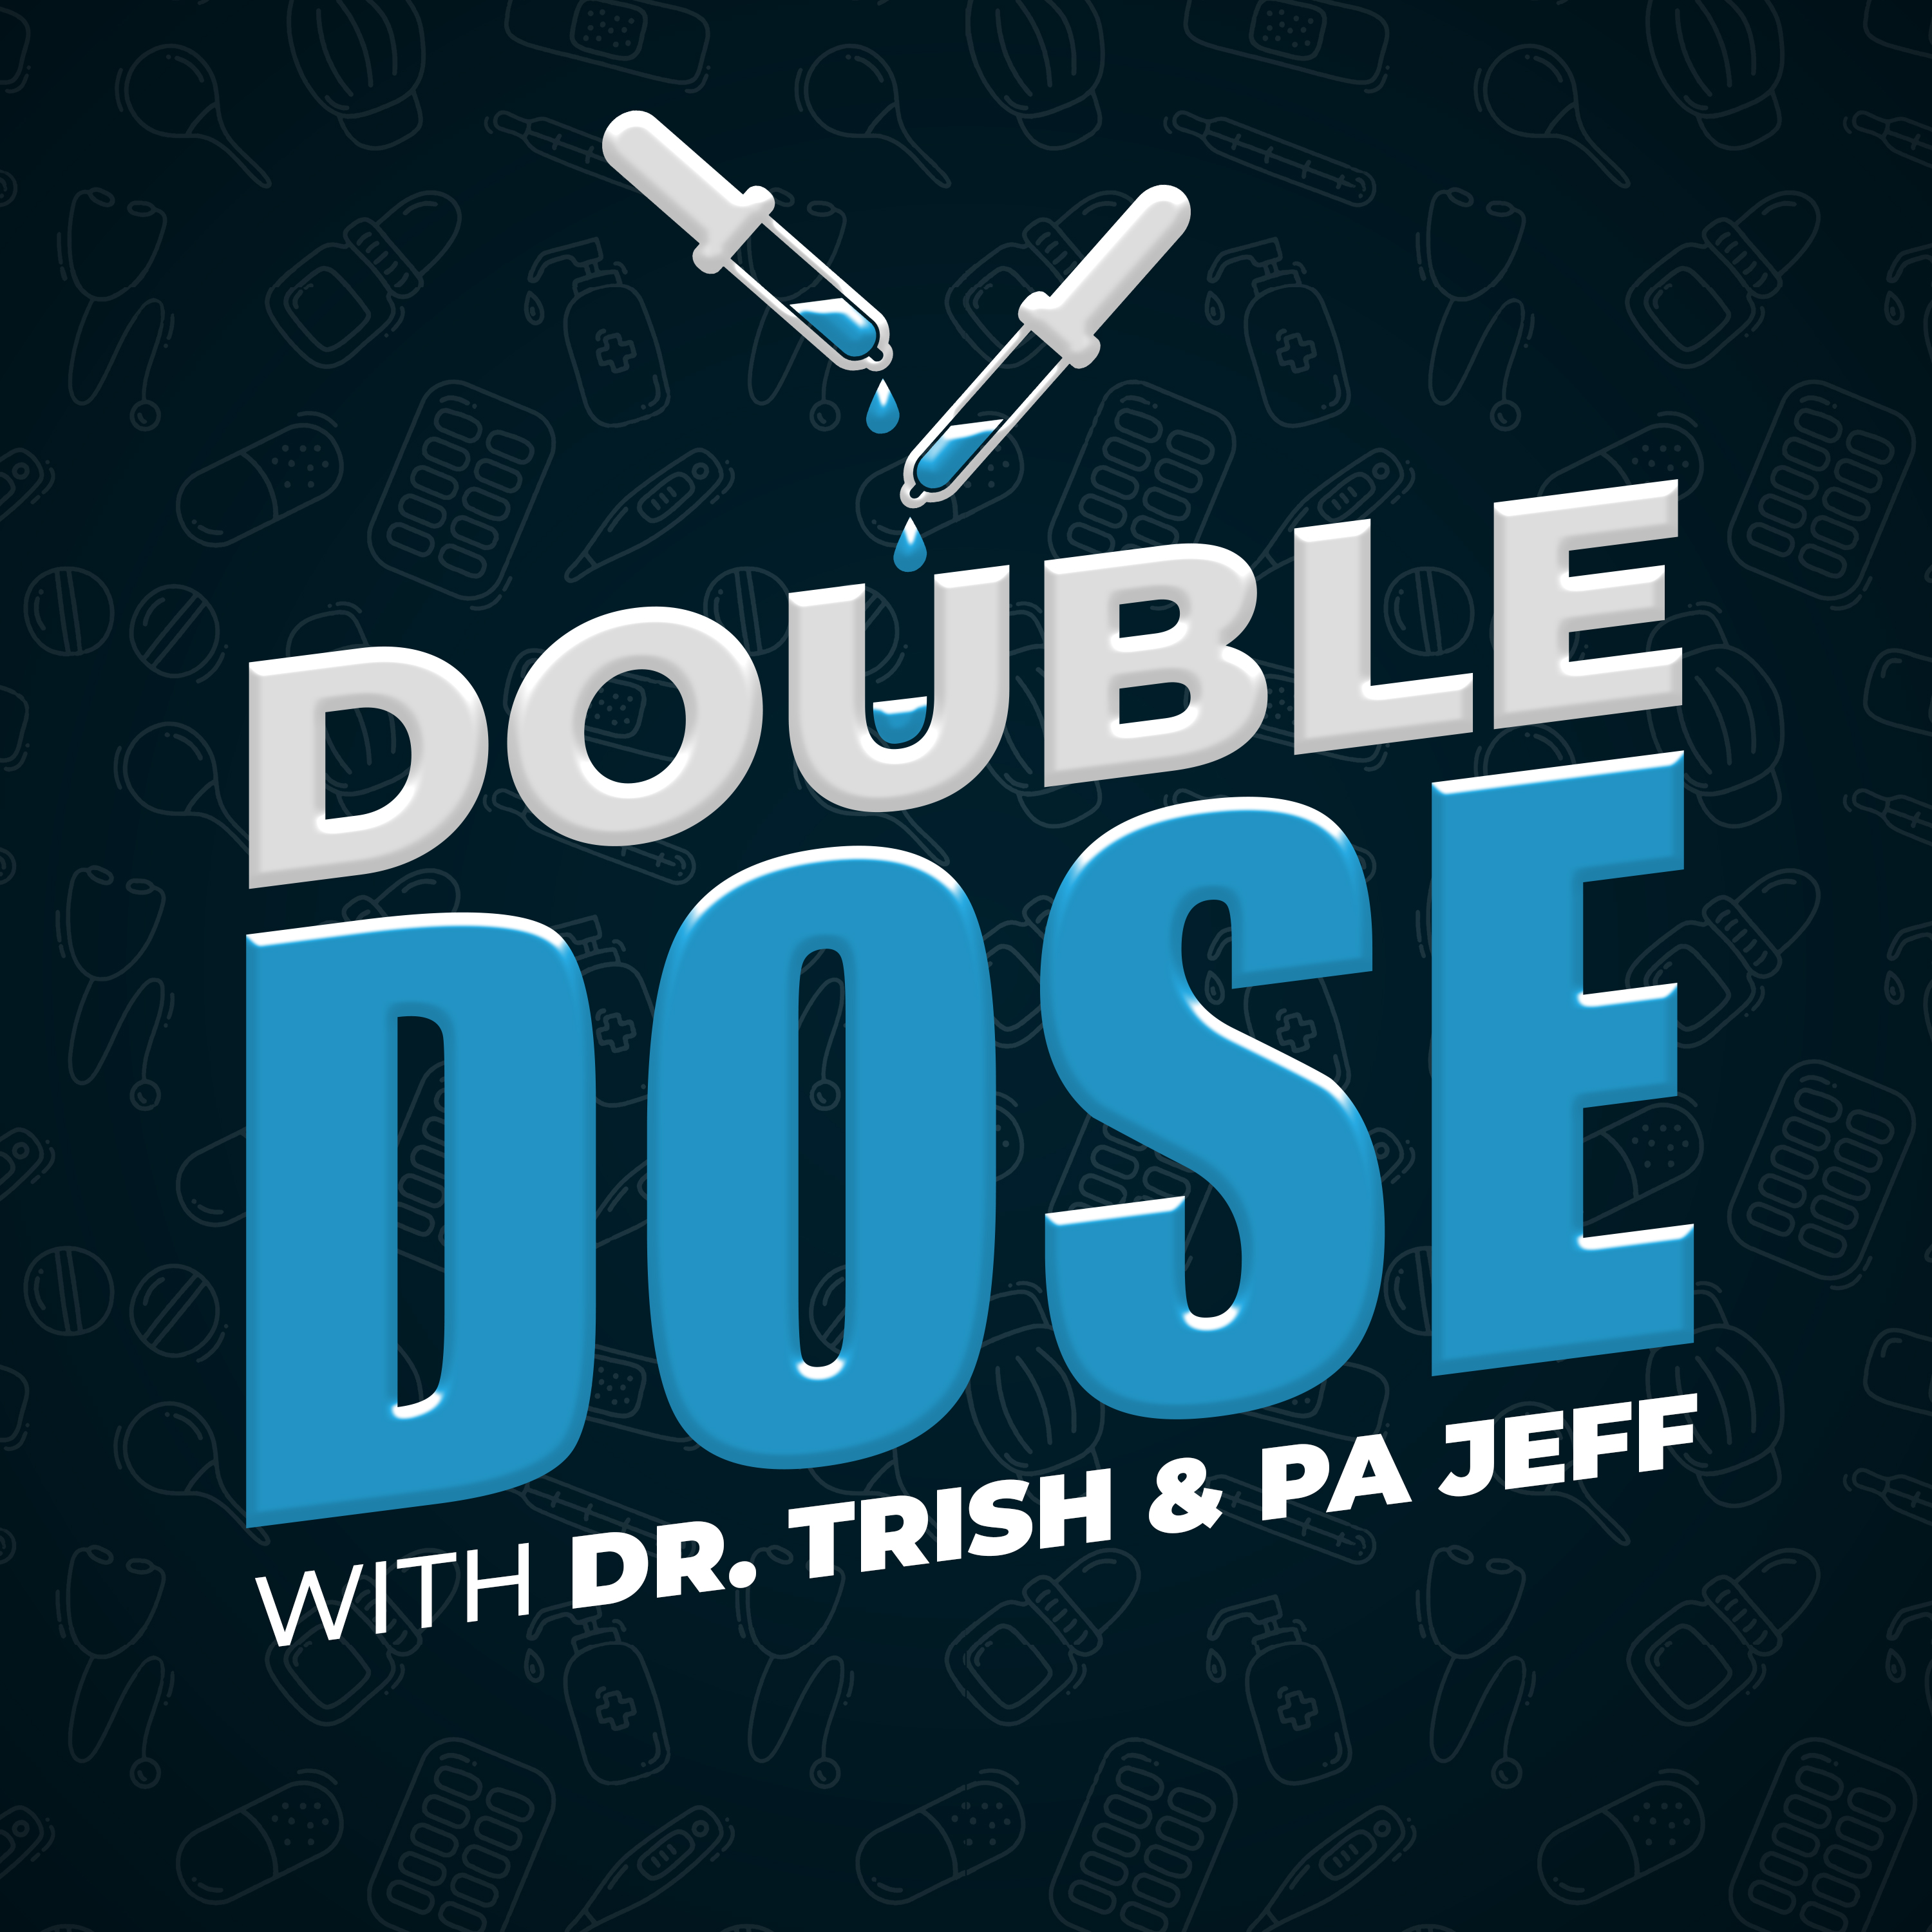 Artwork for podcast DOUBLE DOSE